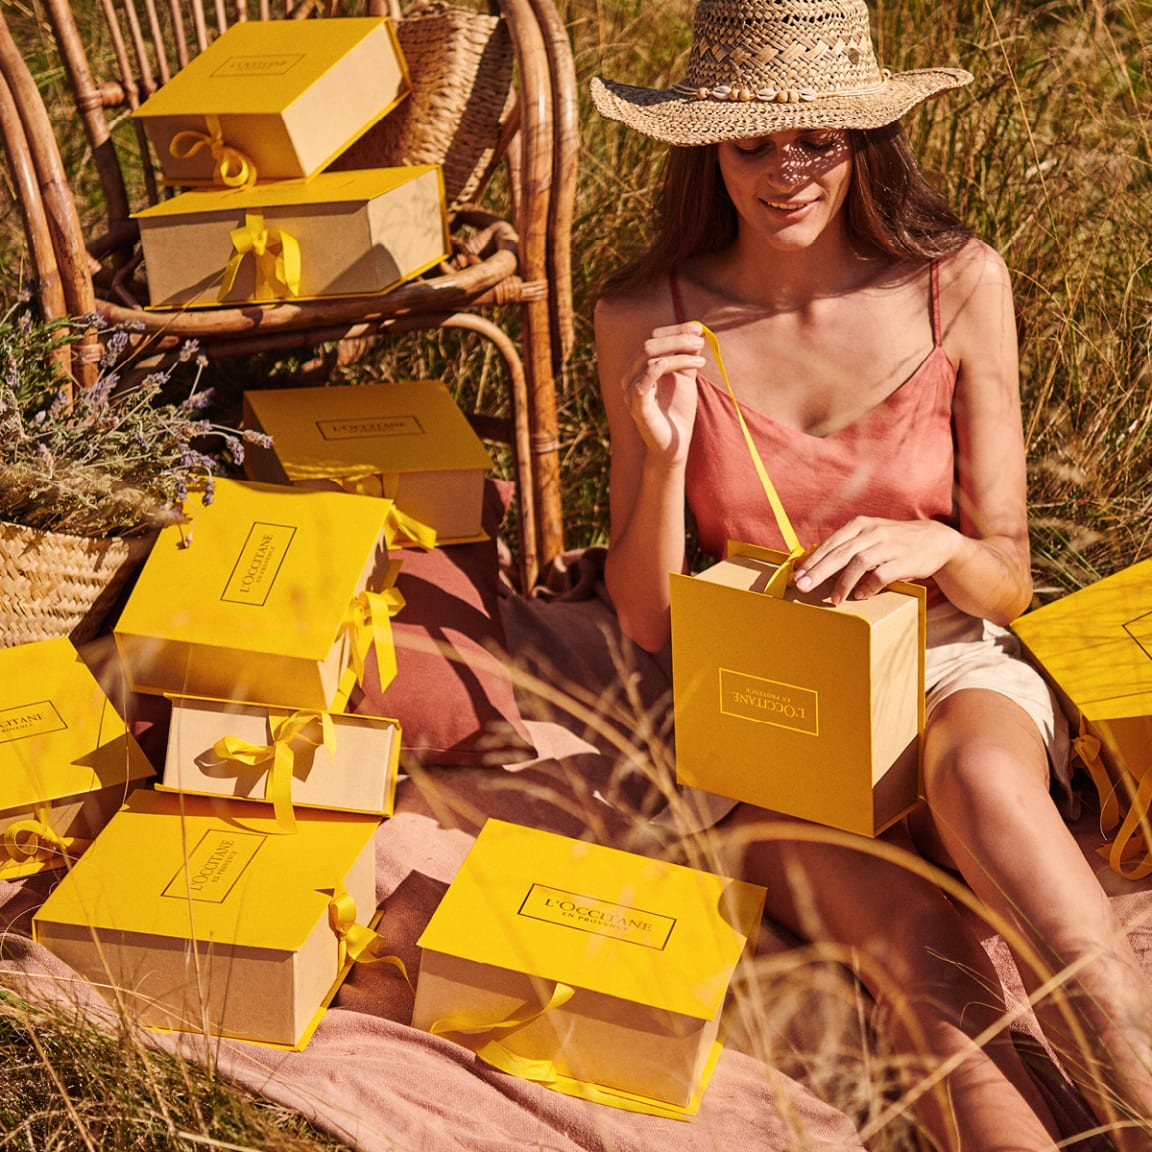 L'Occitane: Shop what matters to you